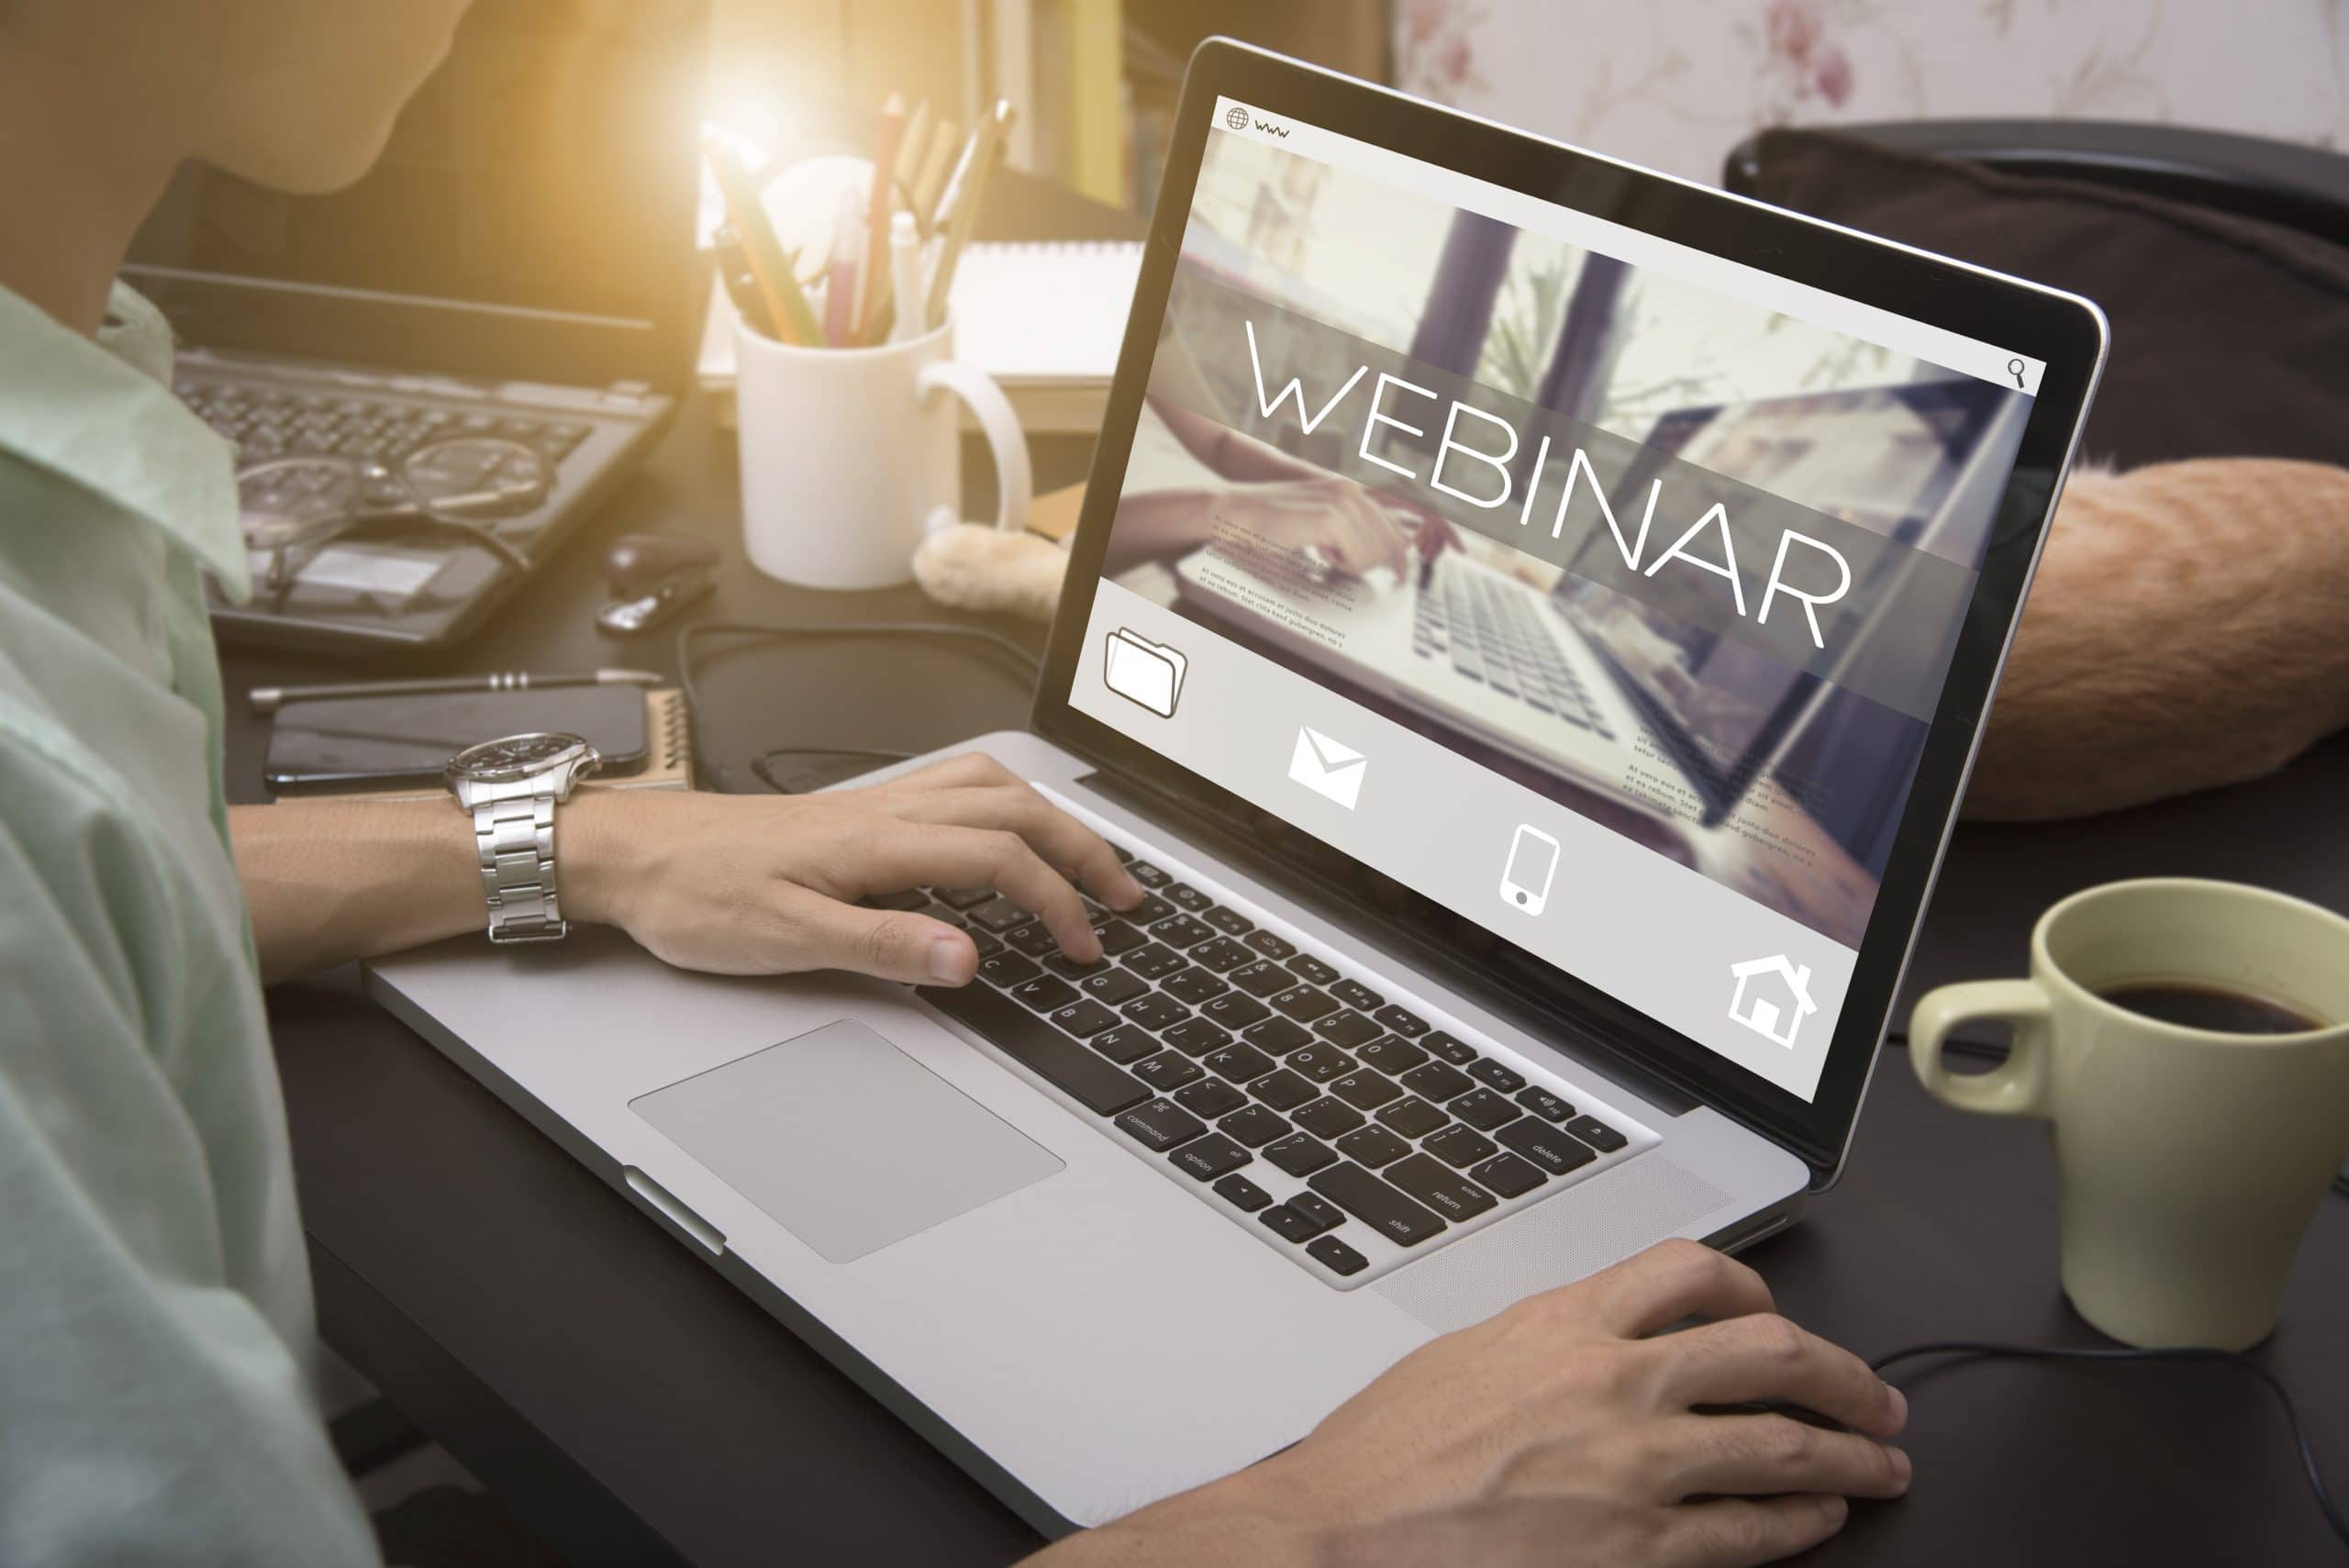 Webinar, Are You Doing Webinars? You Should Be